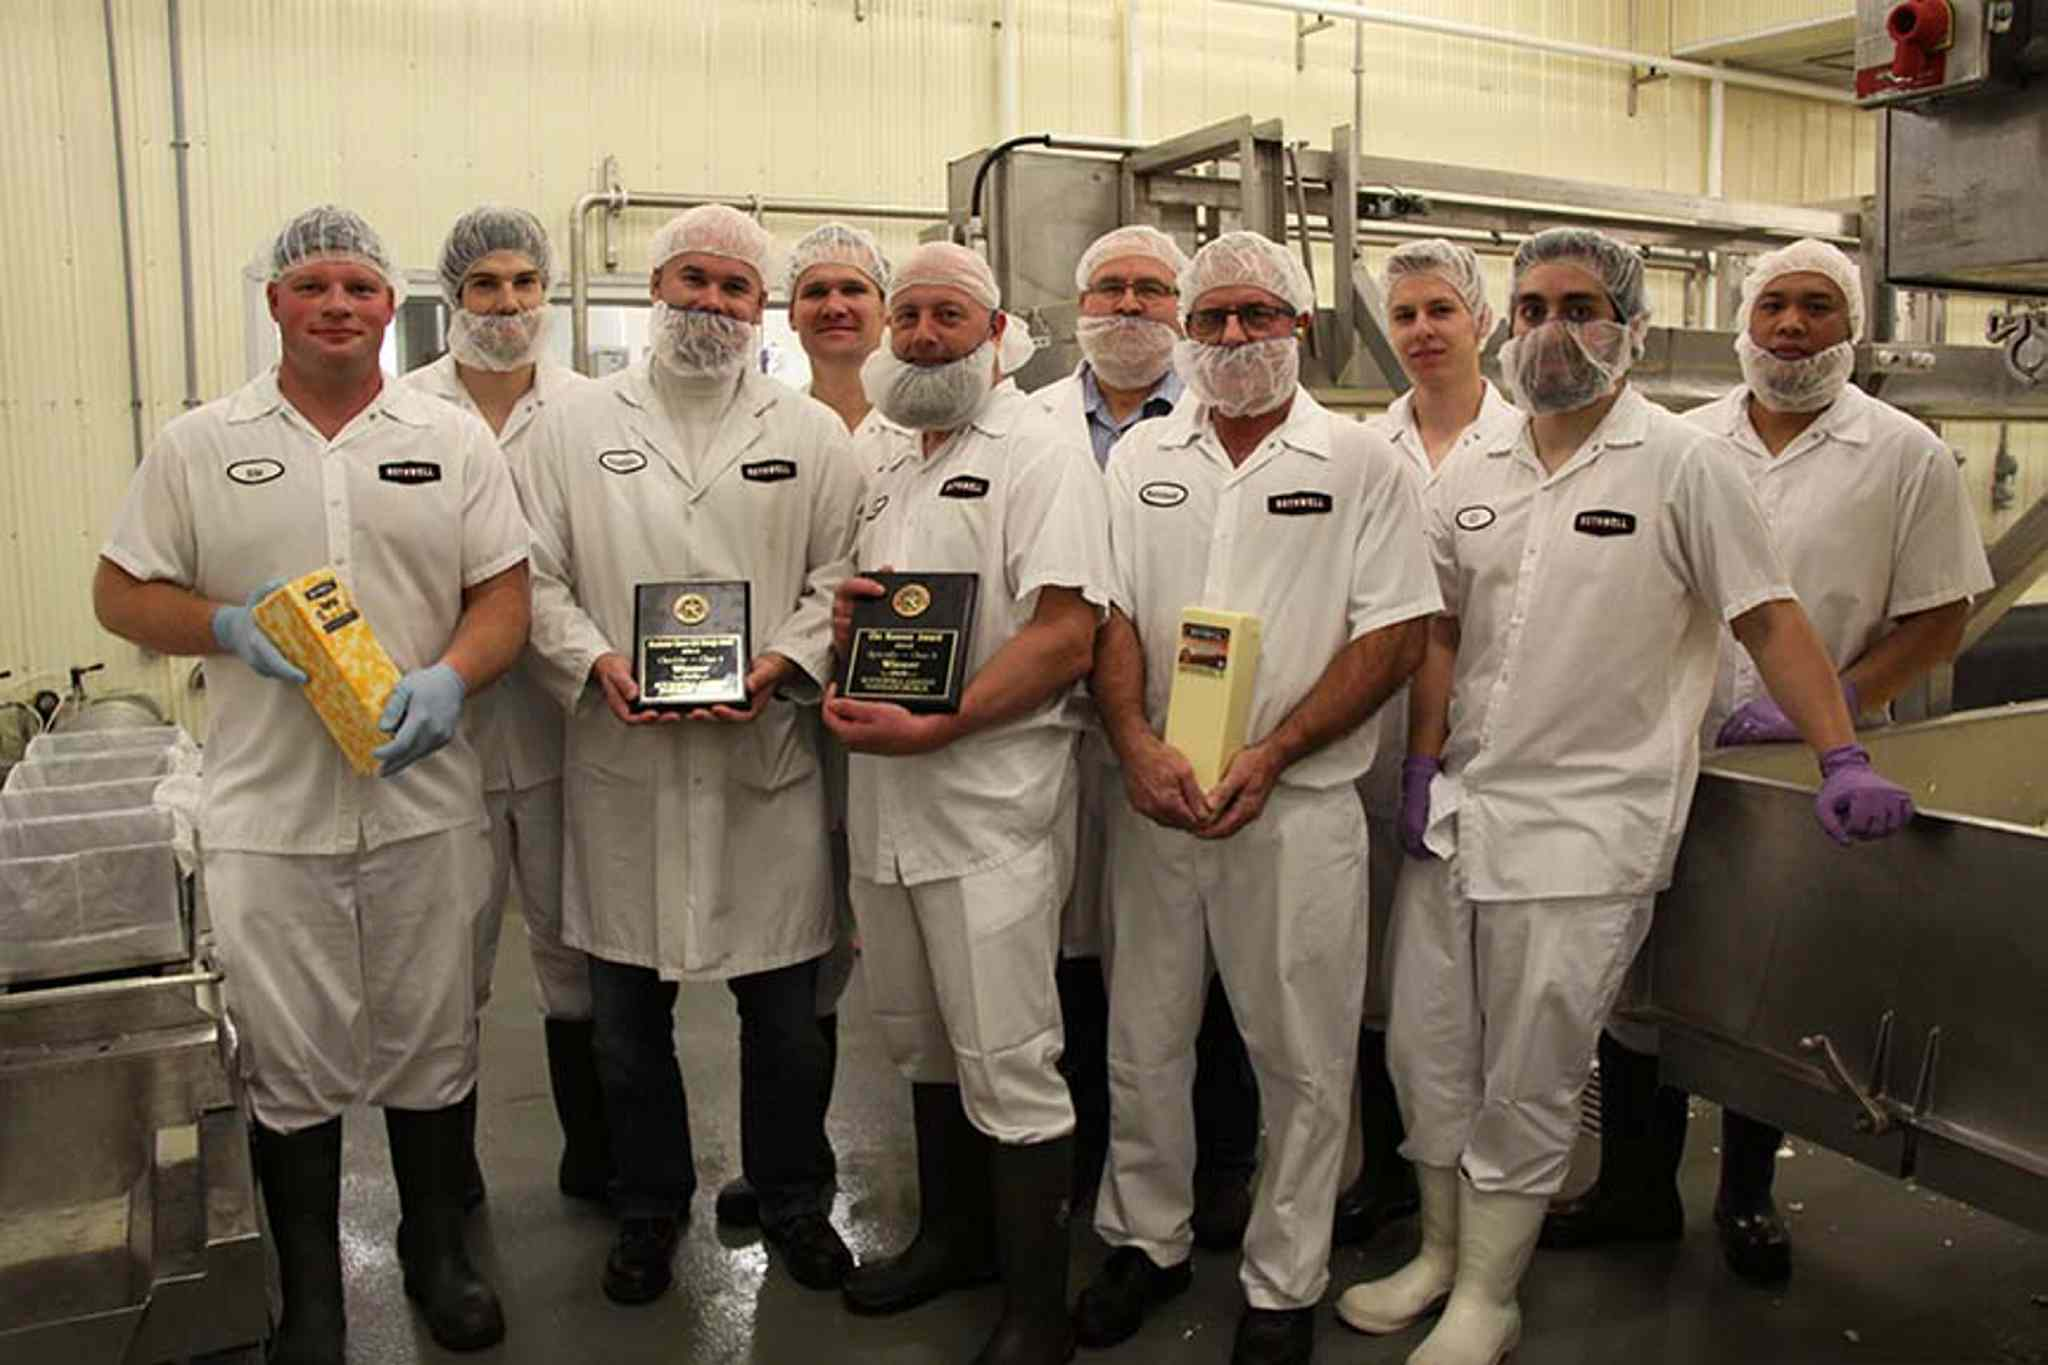 Employees hold Bothwell Cheese awards and products. Front row (from left): Stuart Penner, Nathan Dueck, Gil Dueck, Reinhold Sawatzky and Matthew Tucker. Back row: Matthew Georgeson, Levi Falk, Rob Hiebert, Alex Wiese and Danny Cajurao.